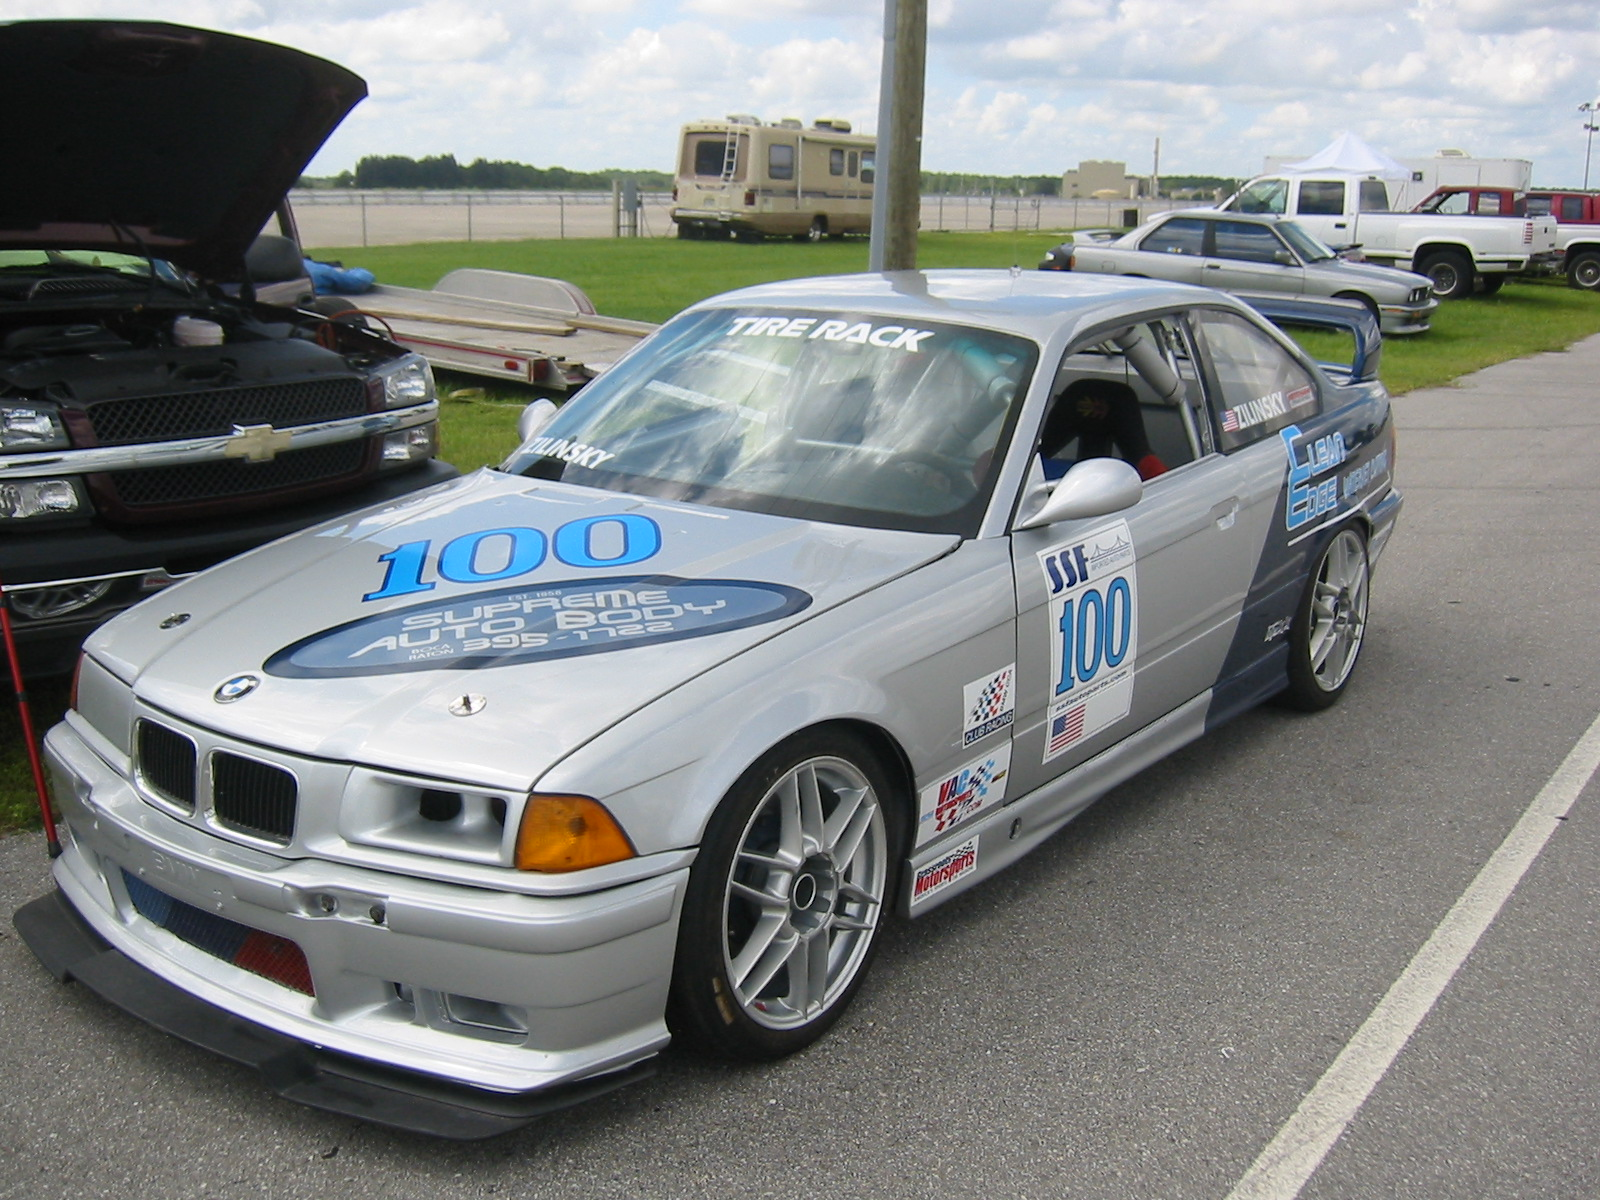 euro m3 race/showcar build! 56k go ride a pony... [UPDATED: 08/13/2007]-111-1163.jpg